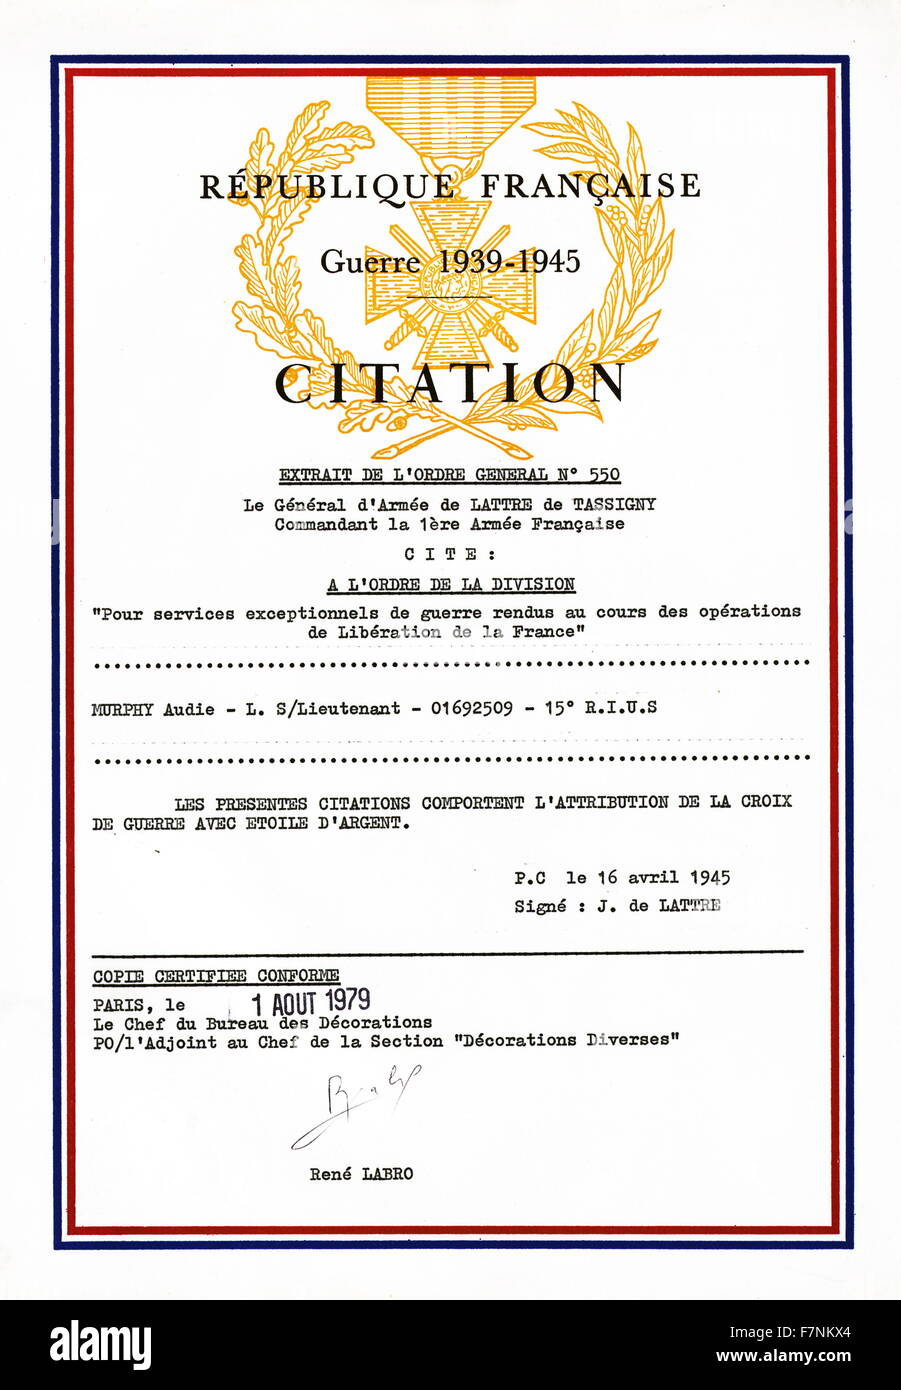 Certificate confirming the award to Audie Murphy by France, of the Croix de guerre with Silver Star Medal 1945. - Stock Image